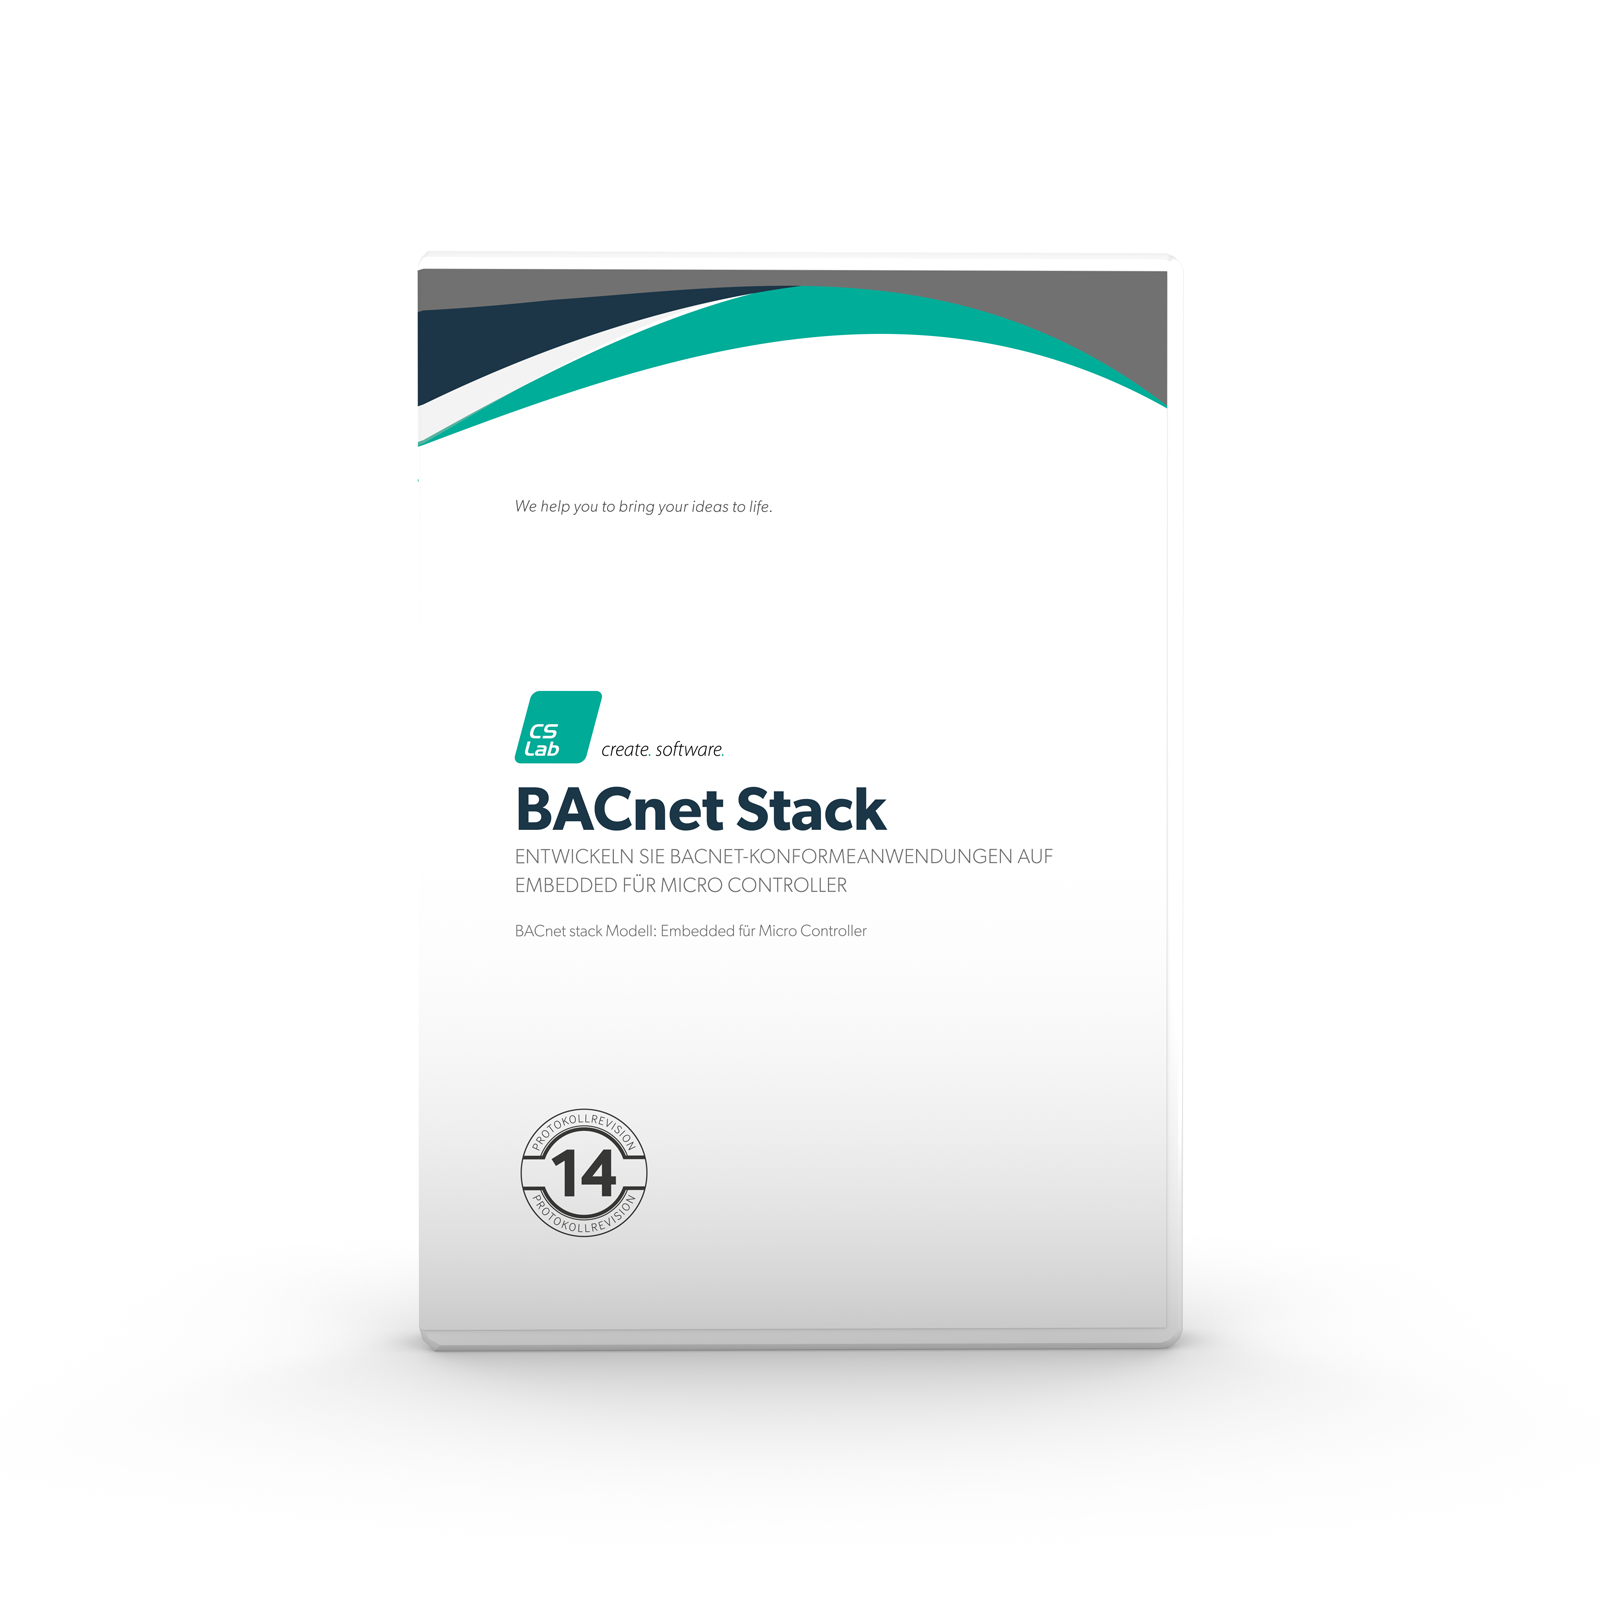 BACnet-Stack-Embedded-für-Micro-Controller.png